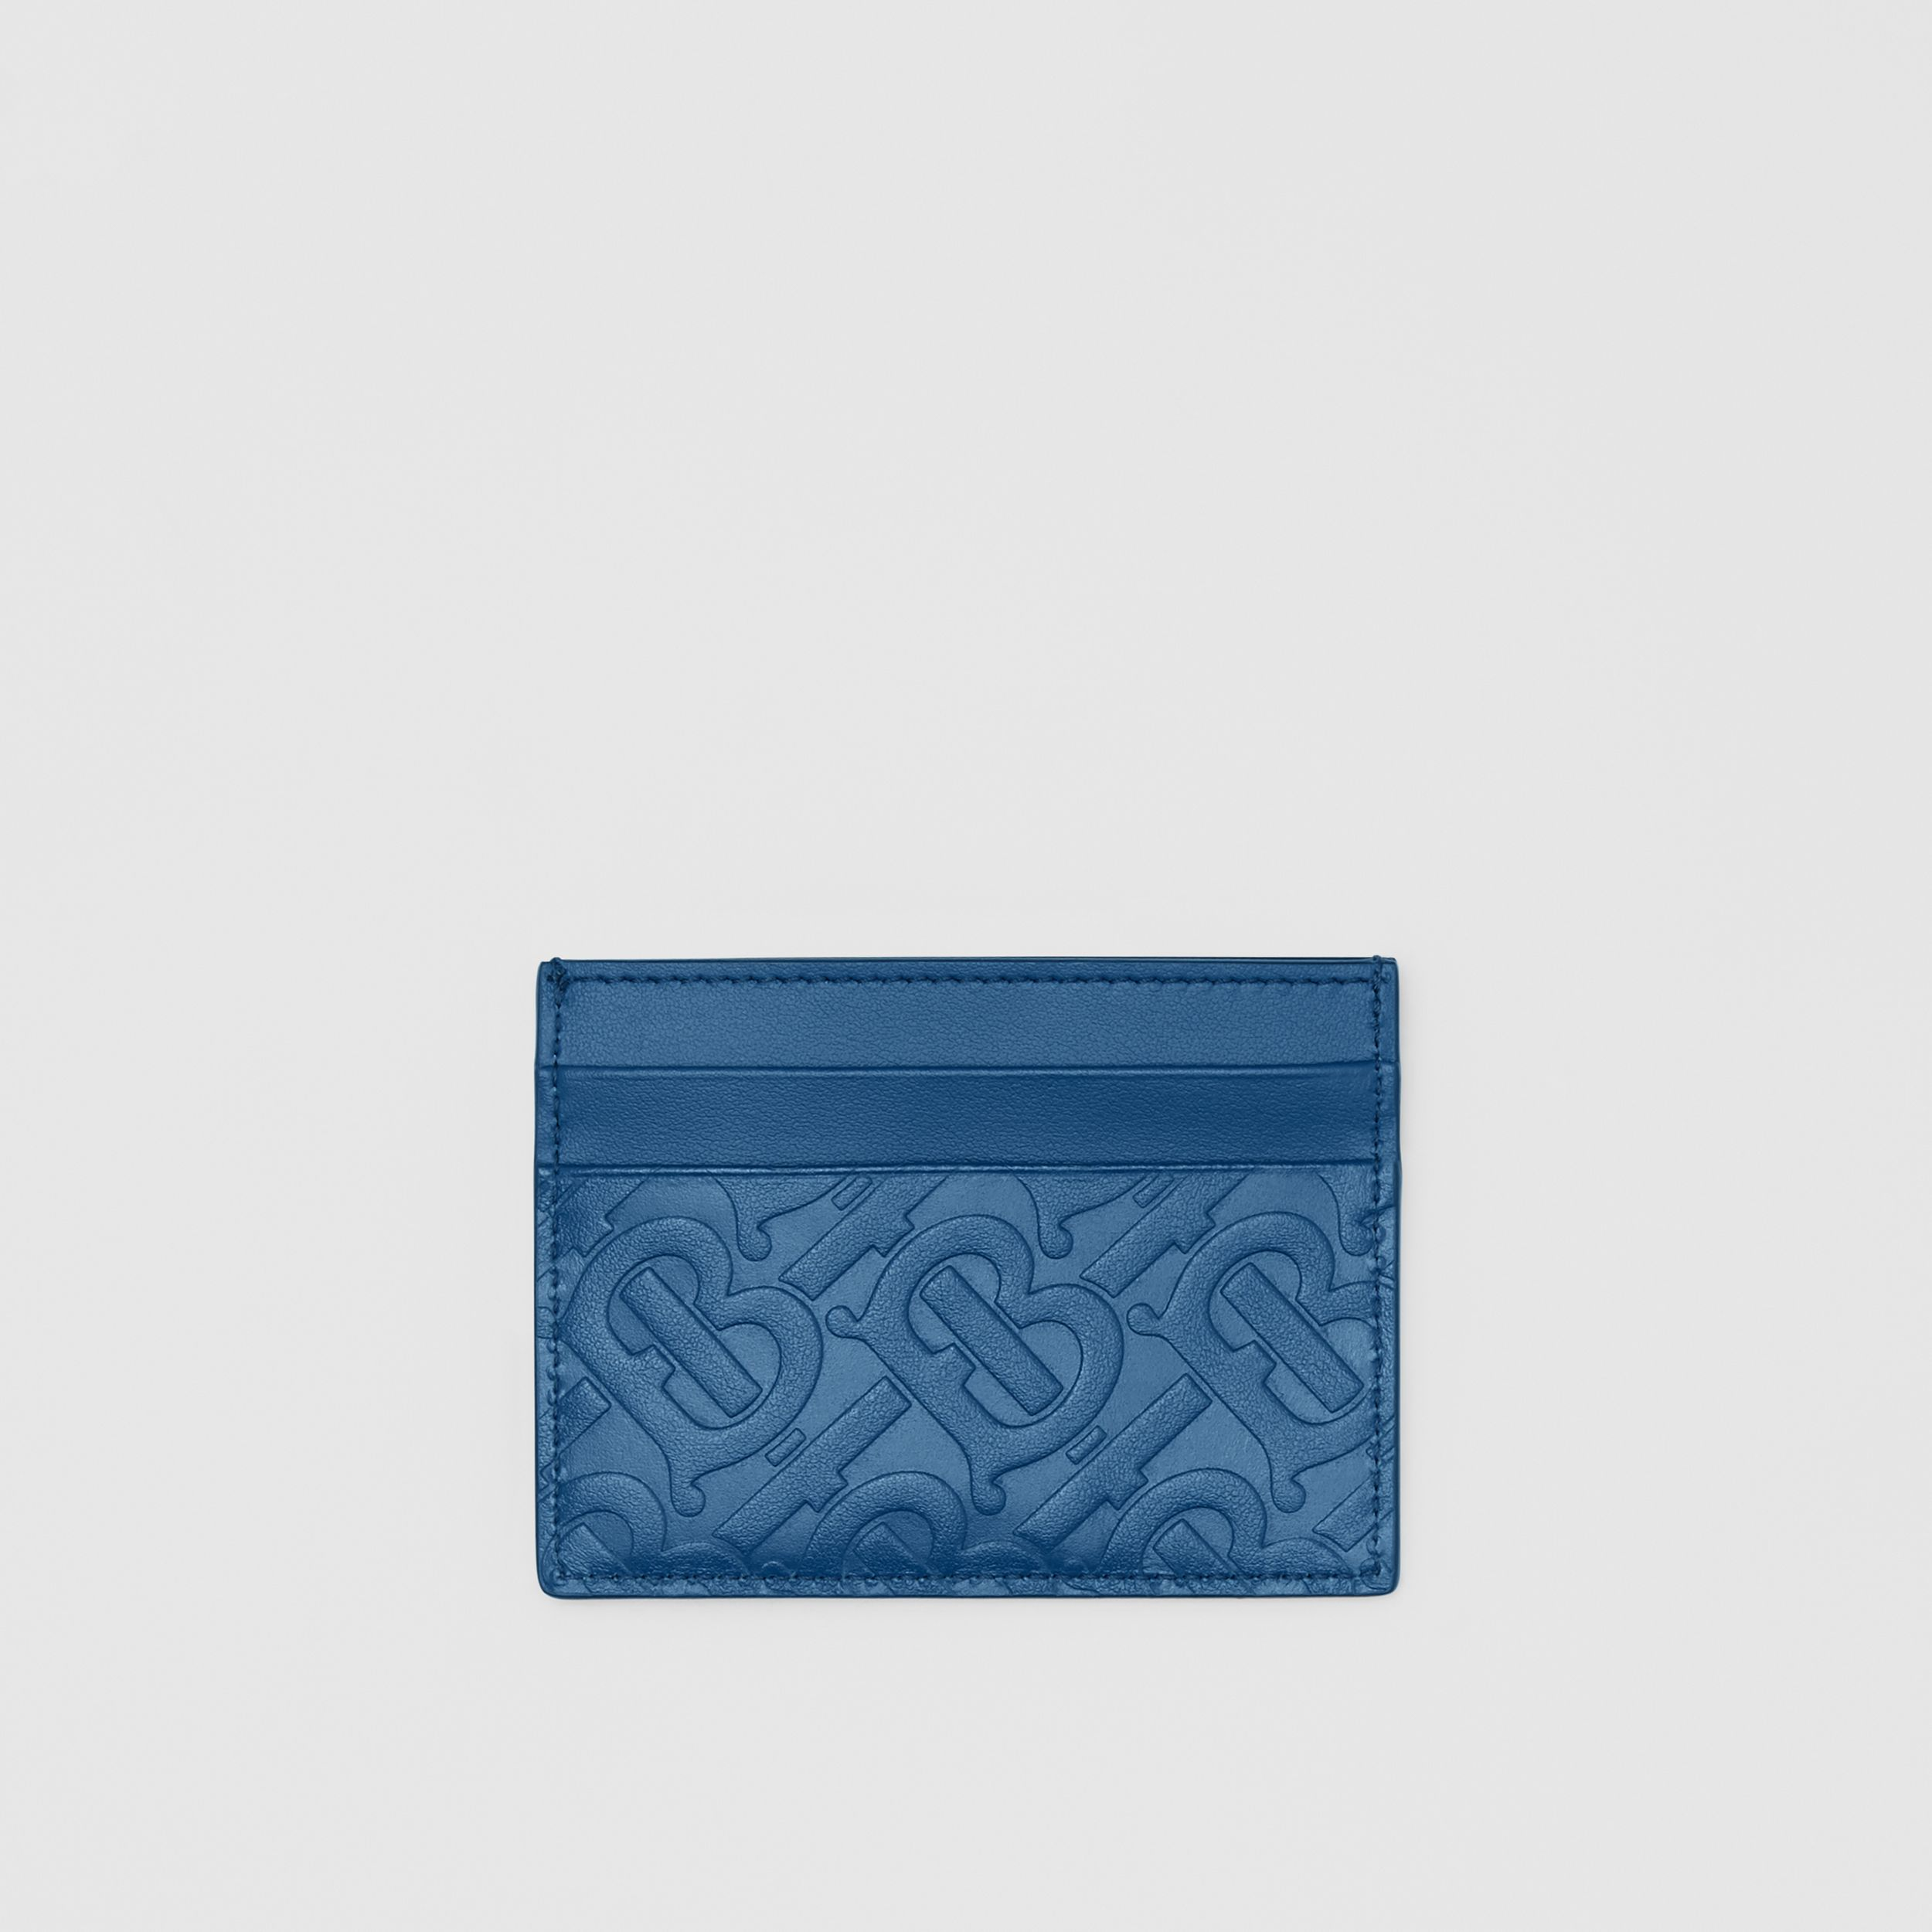 Monogram Leather Card Case in Pale Canvas Blue - Men | Burberry United Kingdom - 1